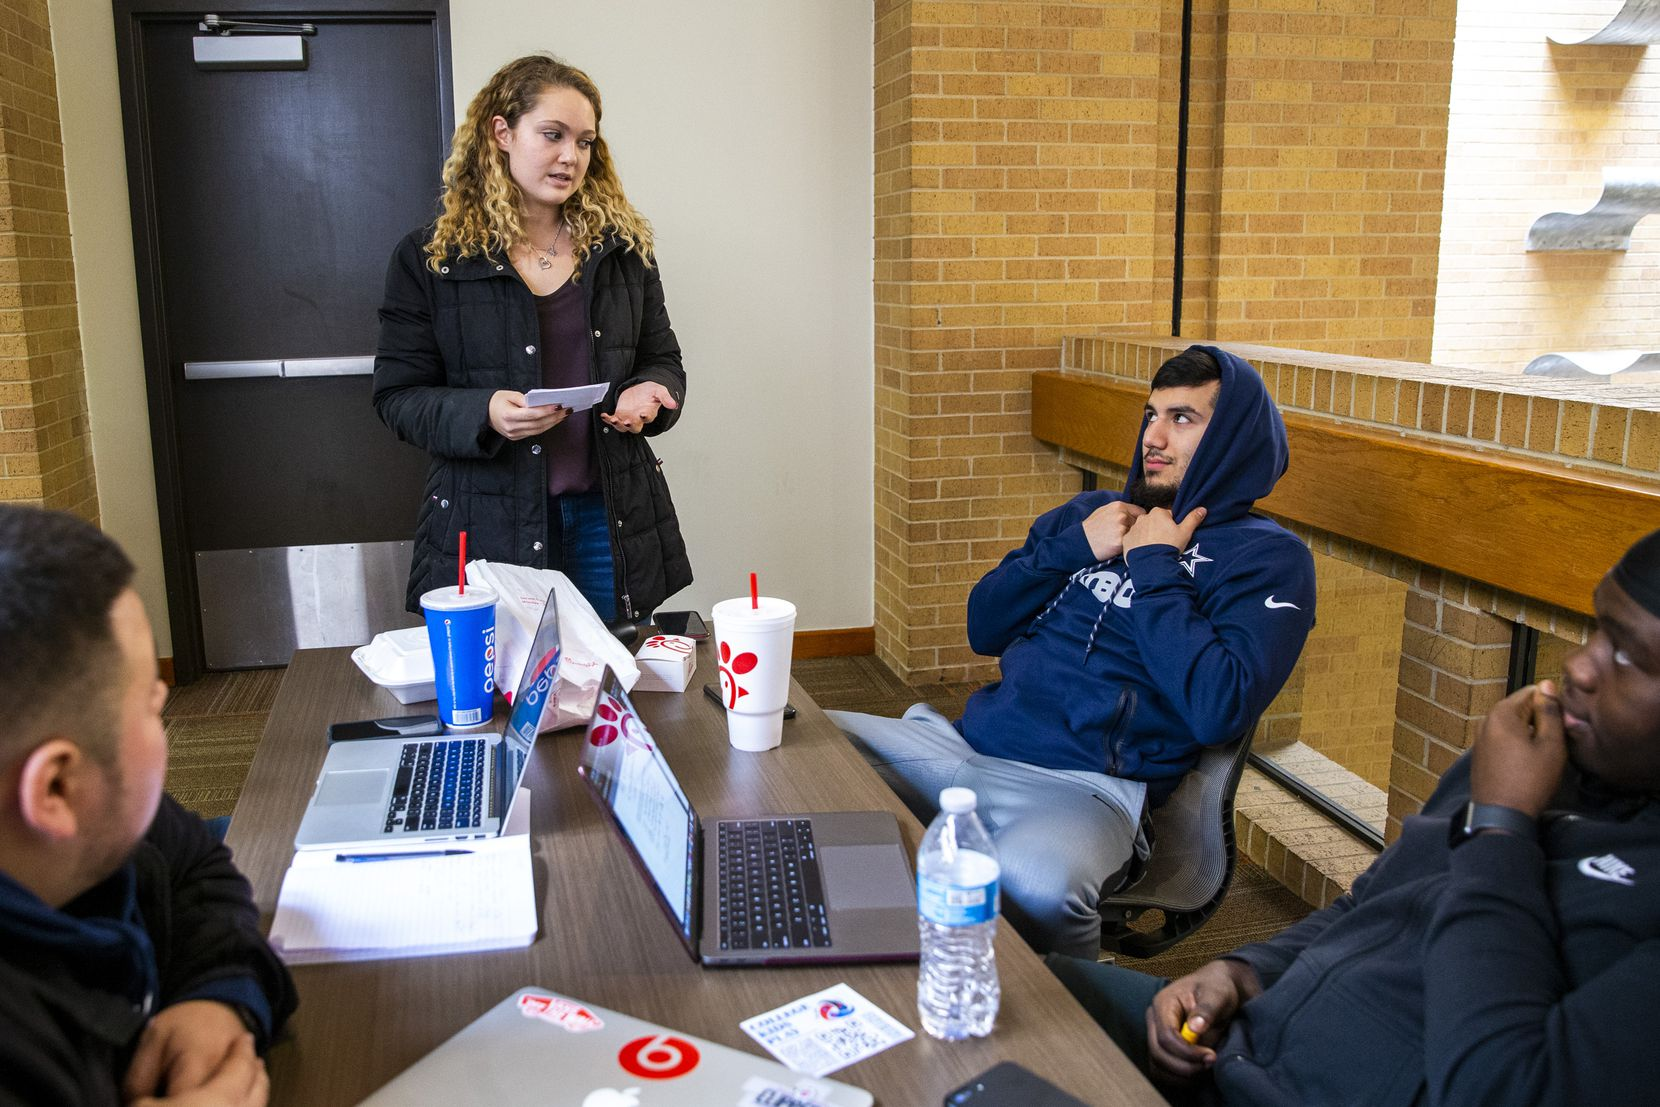 Arianna Bencid (center), senior, surveys sophomores Carlos Aguilar (second from right) and Jack Agbadiba (right) about the 2020 census in the University Center at the University of Texas at Arlington campus in Arlington, Texas, on Thursday, Feb. 13, 2020. Bencid and other members of the Public Relations Student Society of America chapter at UTA are leading a campaign to encourage student participation in the 2020 census.(Lynda M. Gonzalez/The Dallas Morning News)